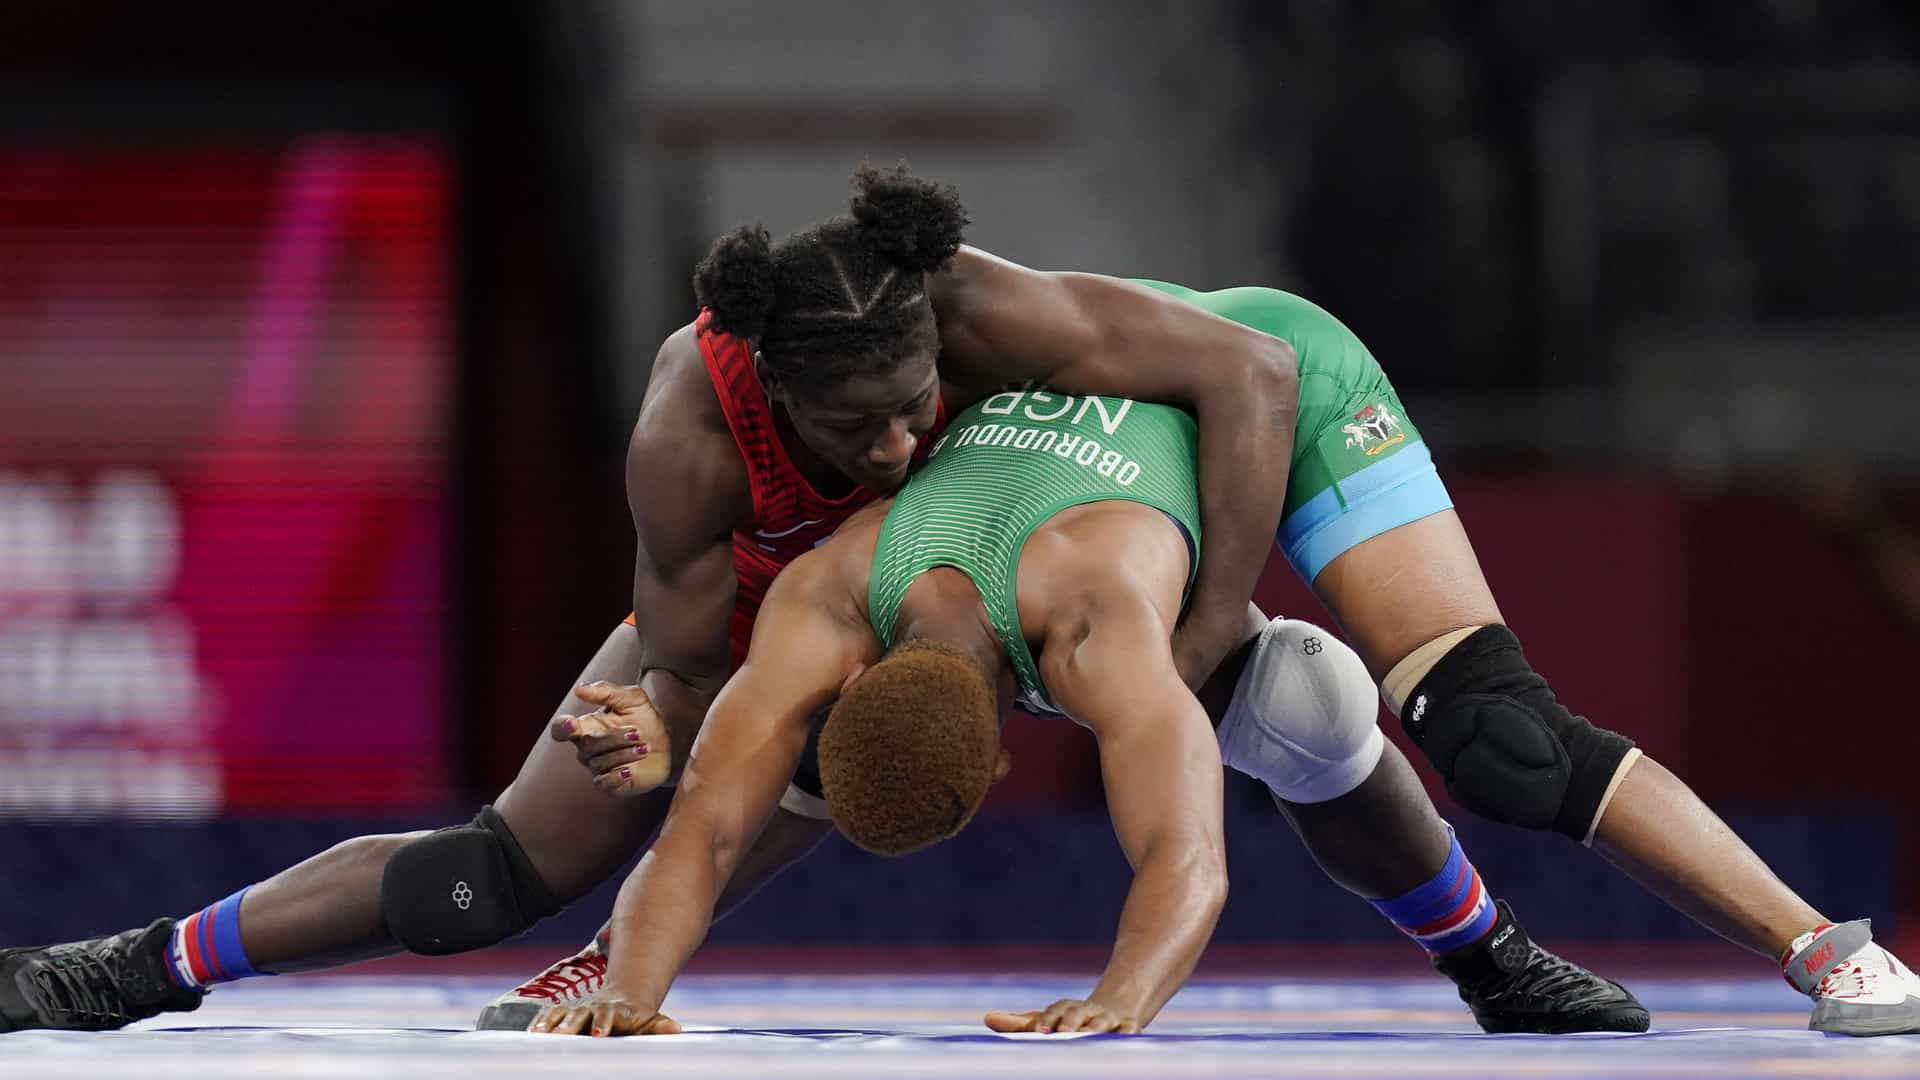 Image for Olympic Wrestling Day 11: USA's Mensah-Stock takes gold